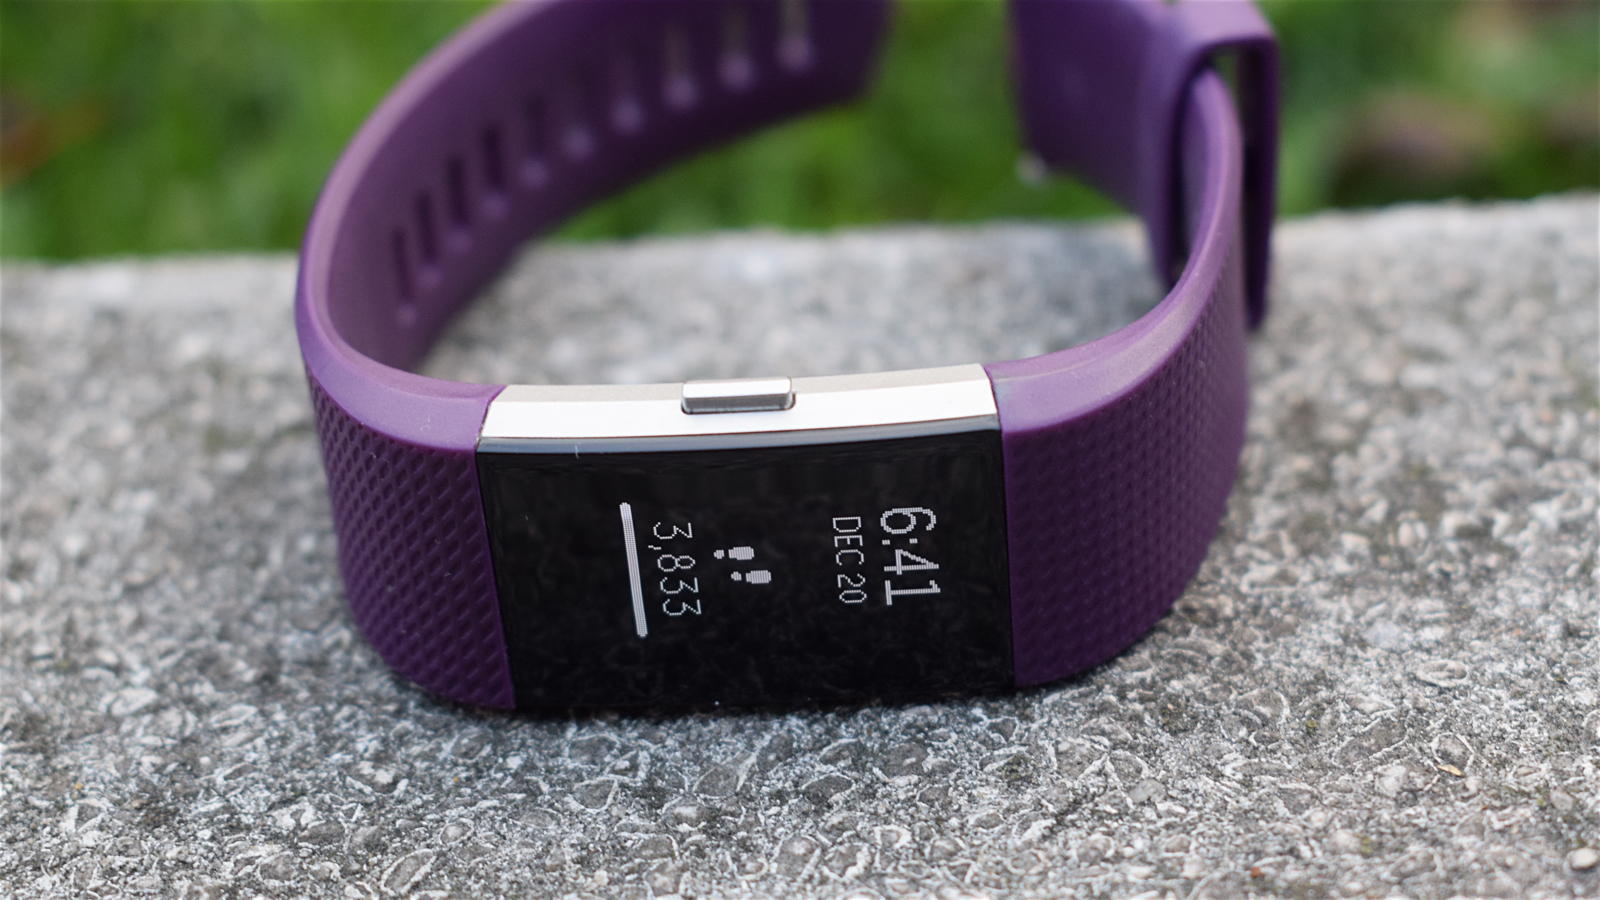 Fitbit used in long-term health study